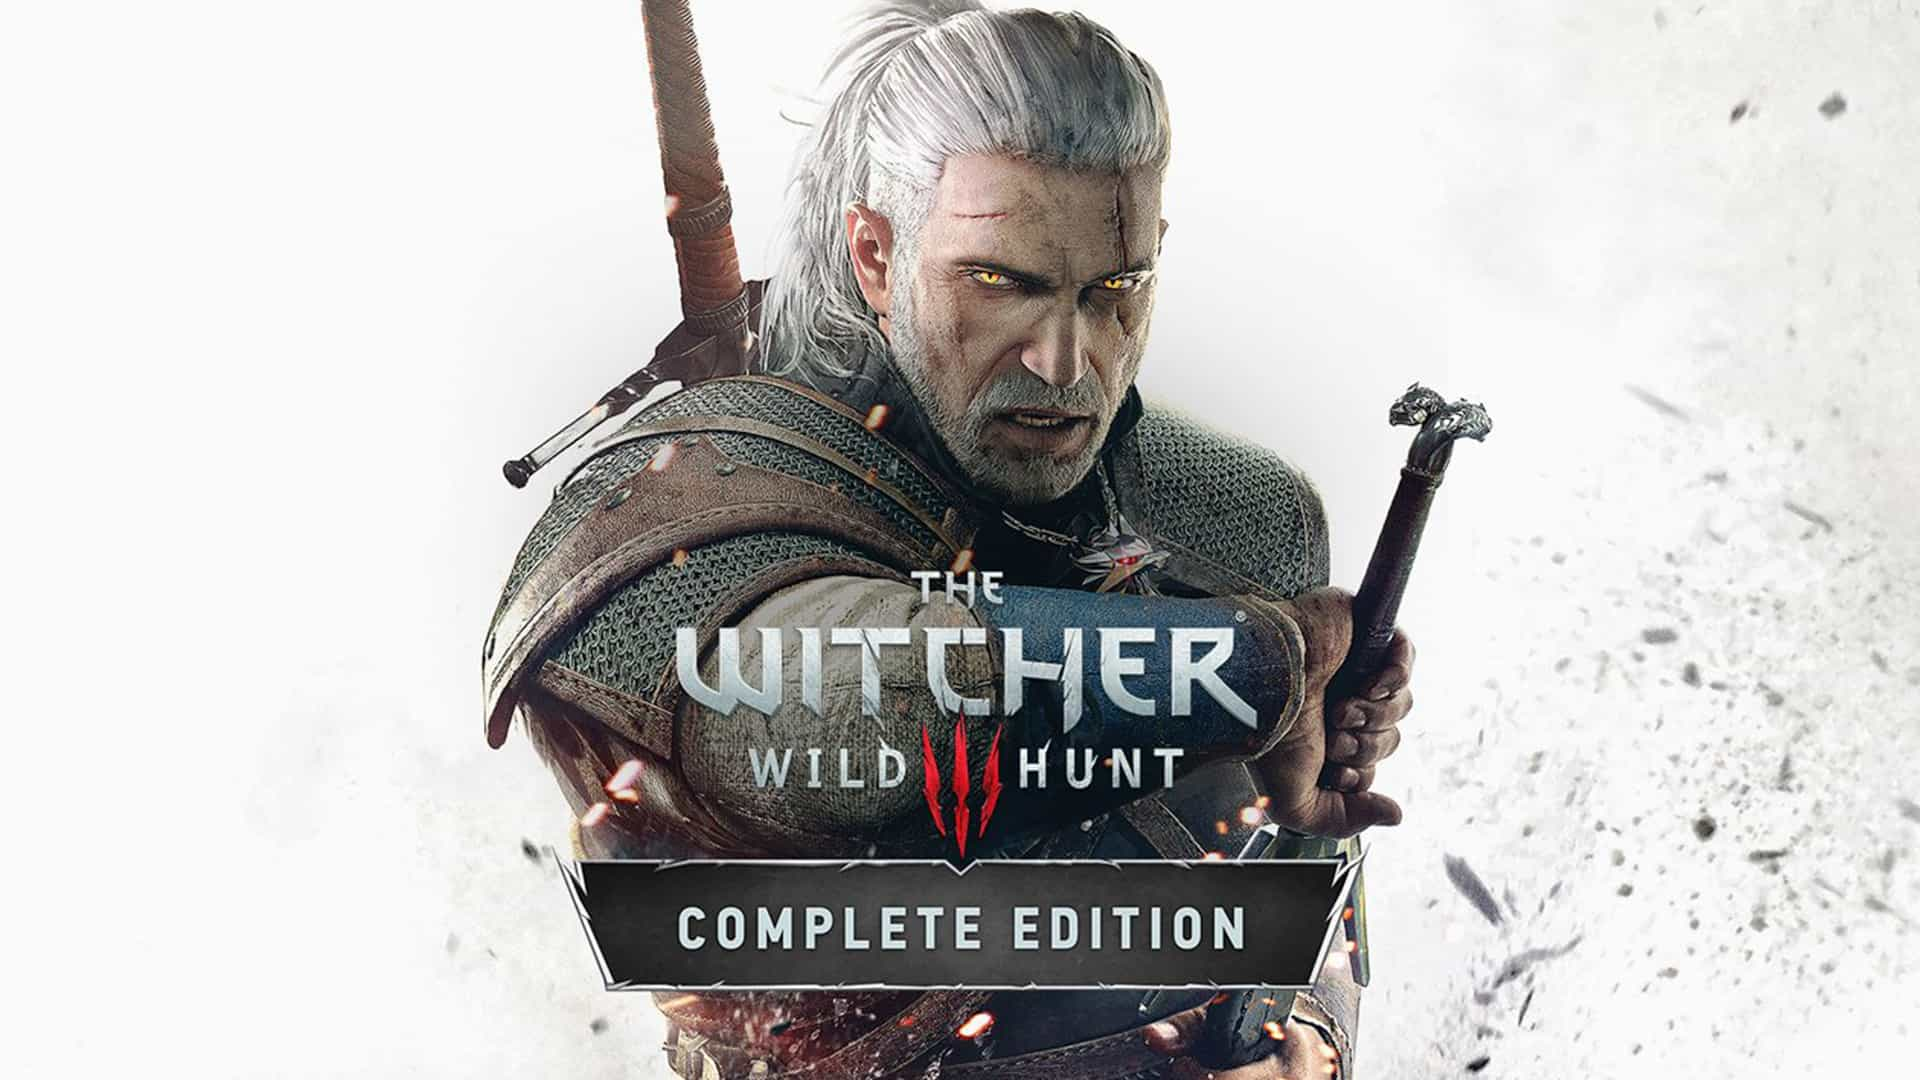 The Witcher 3: Wild Hunt – Complete Edition For Nintendo Switch Launching On October 15